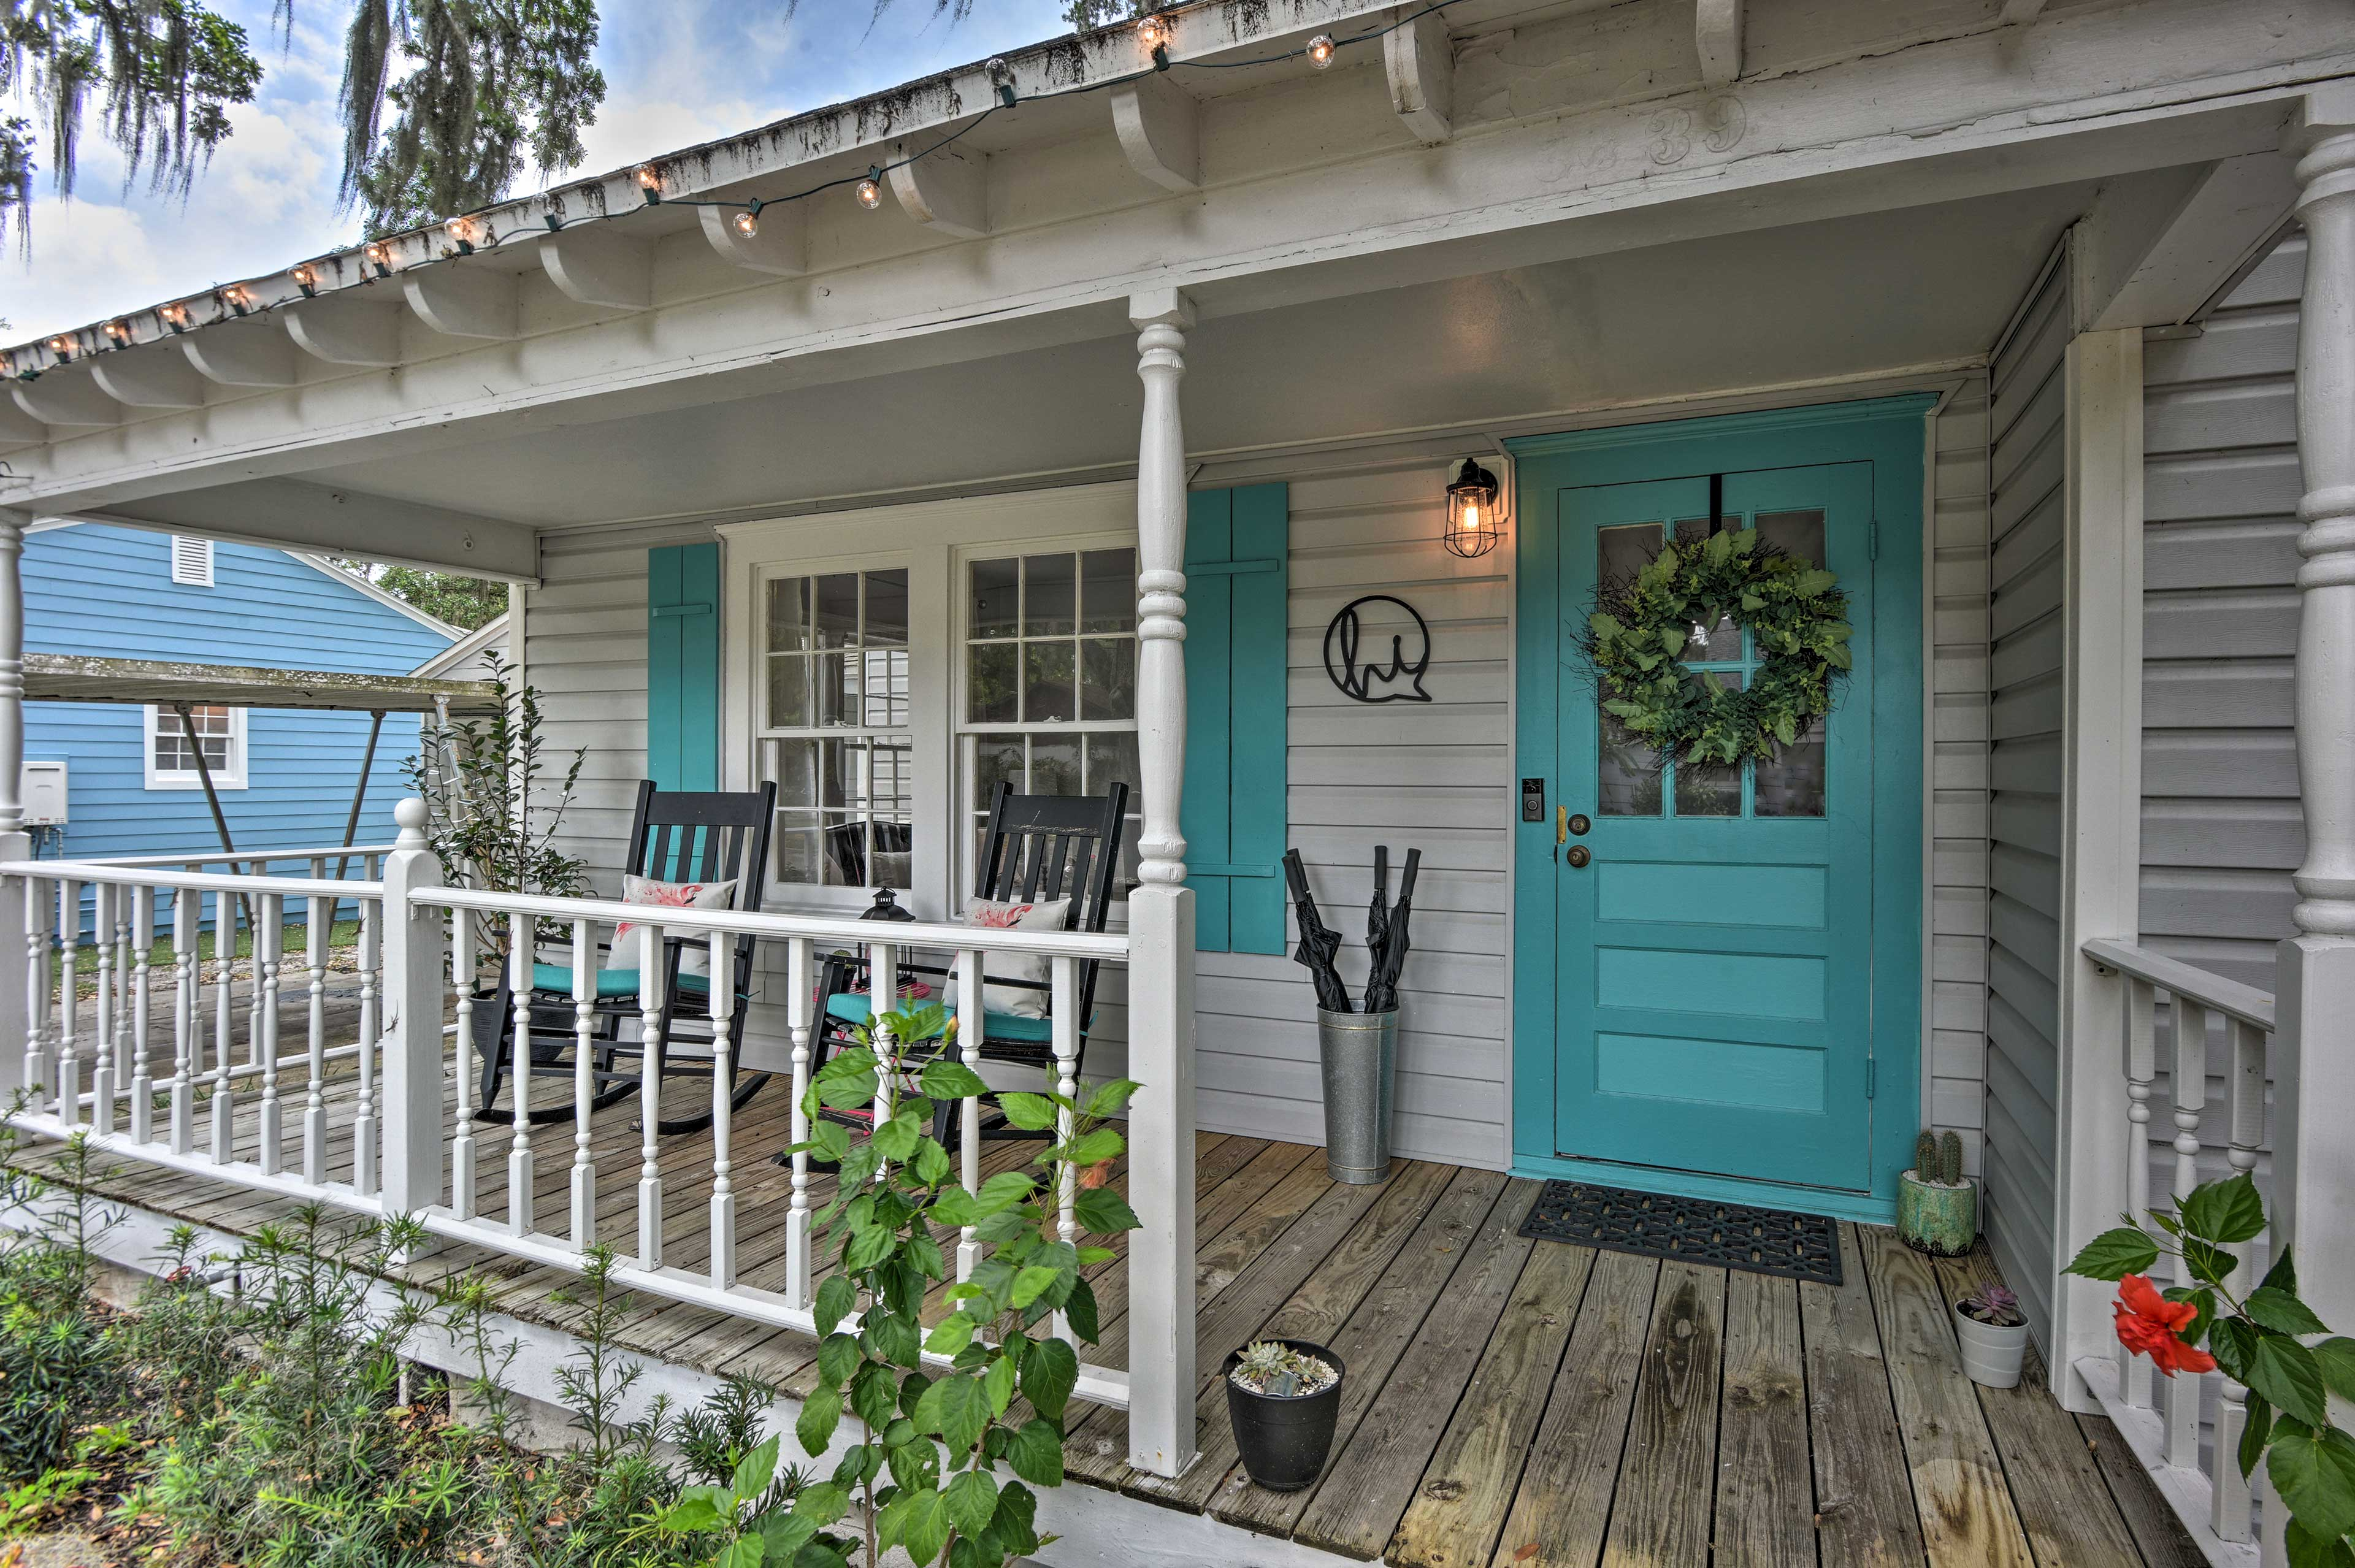 This 2-bed, 1-bath home sleeps 4 guests comfortably.